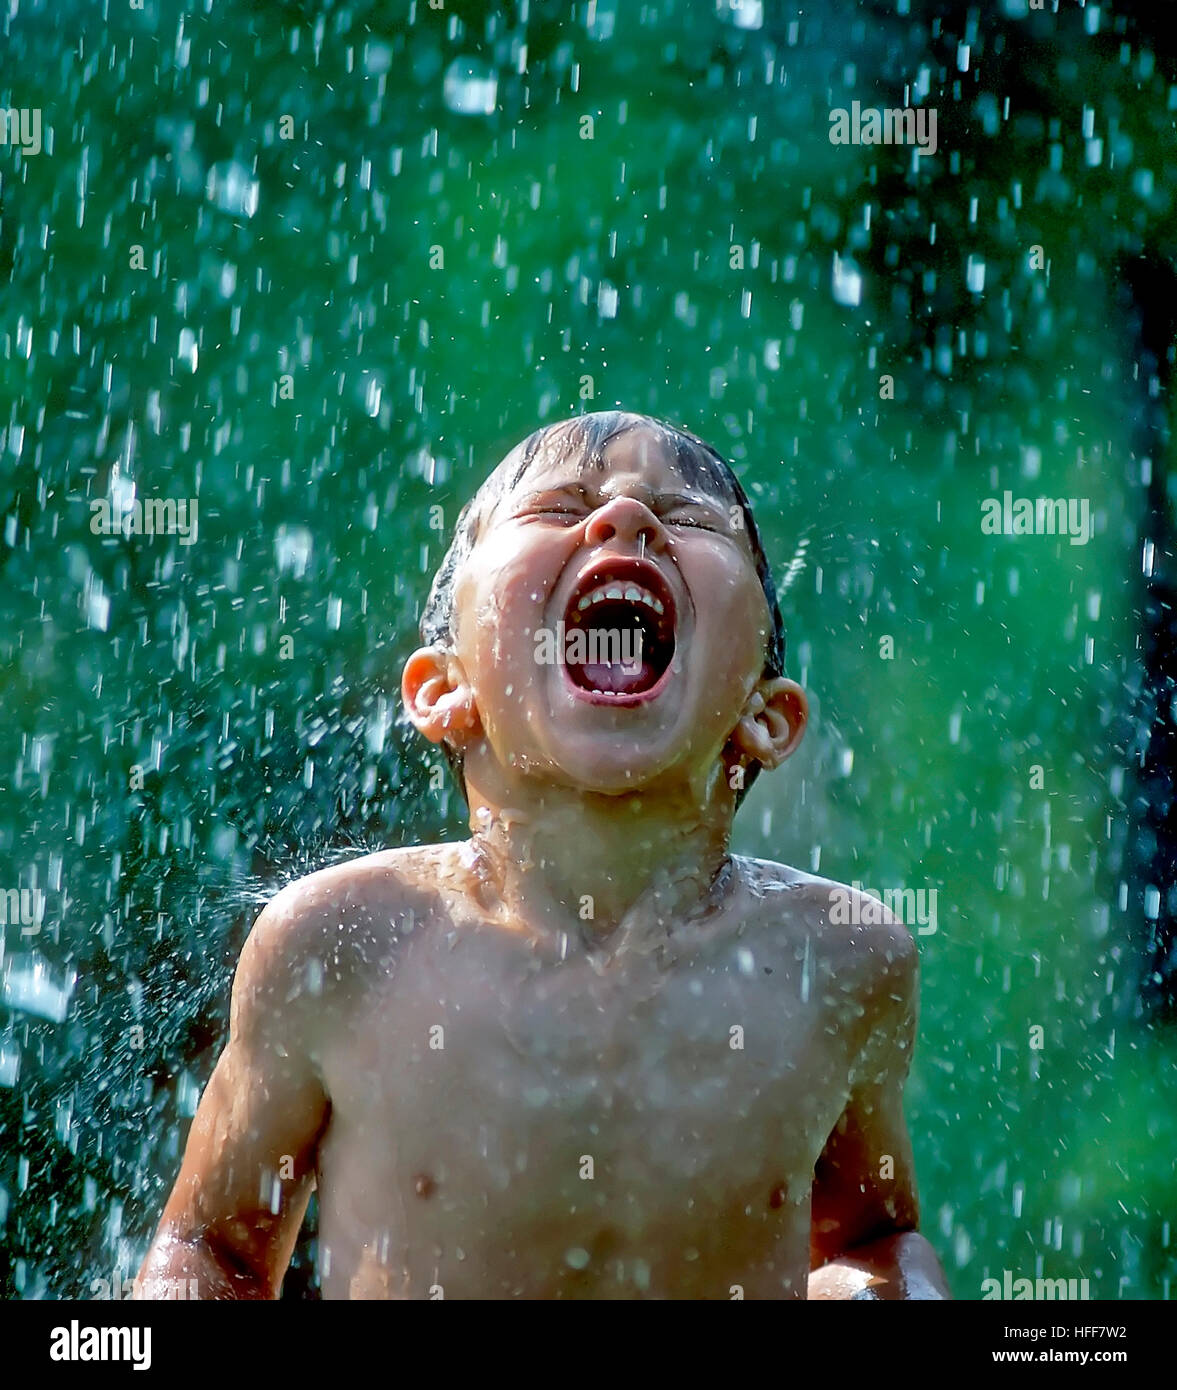 A young boy catches raindrops in his open mouth with an expression of pure joy and youthful exuberance. - Stock Image